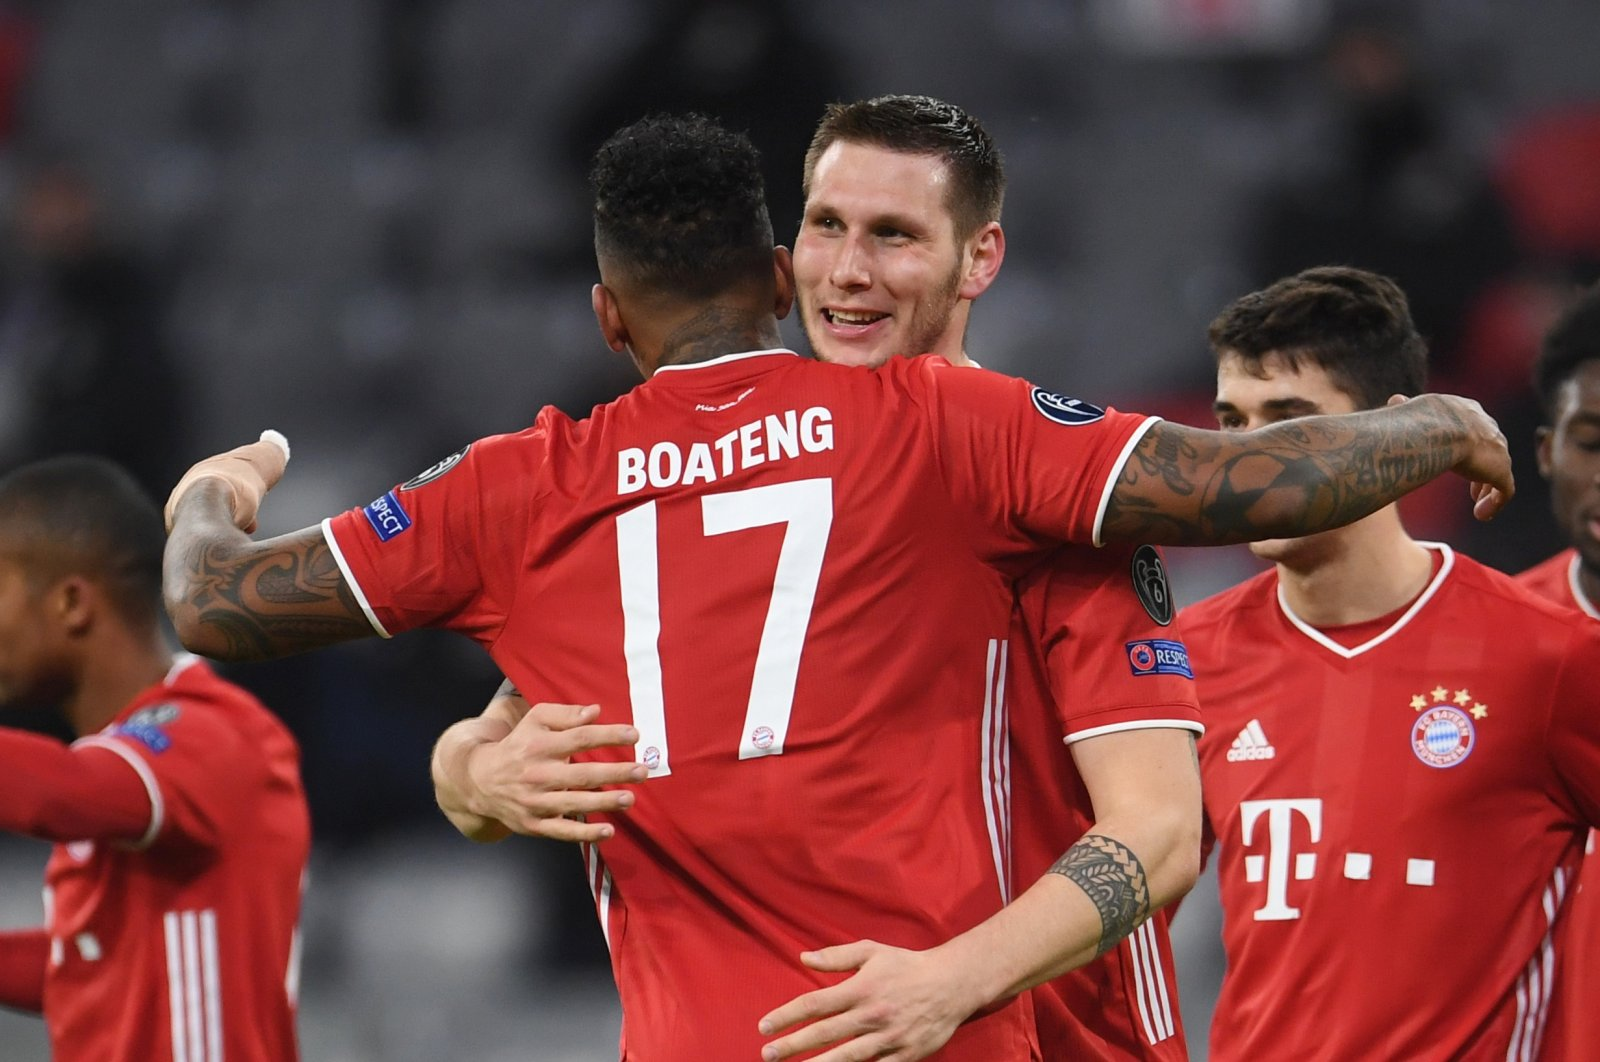 Bayern Munich's Jerome Boateng (C-L) and Nikolas Sule (C-R) celebrate a goal during a Champions League match against Lokomotiv Moscow at the Allianz Arena in Munich, Germany, Dec. 9, 2020. (Reuters Photo)